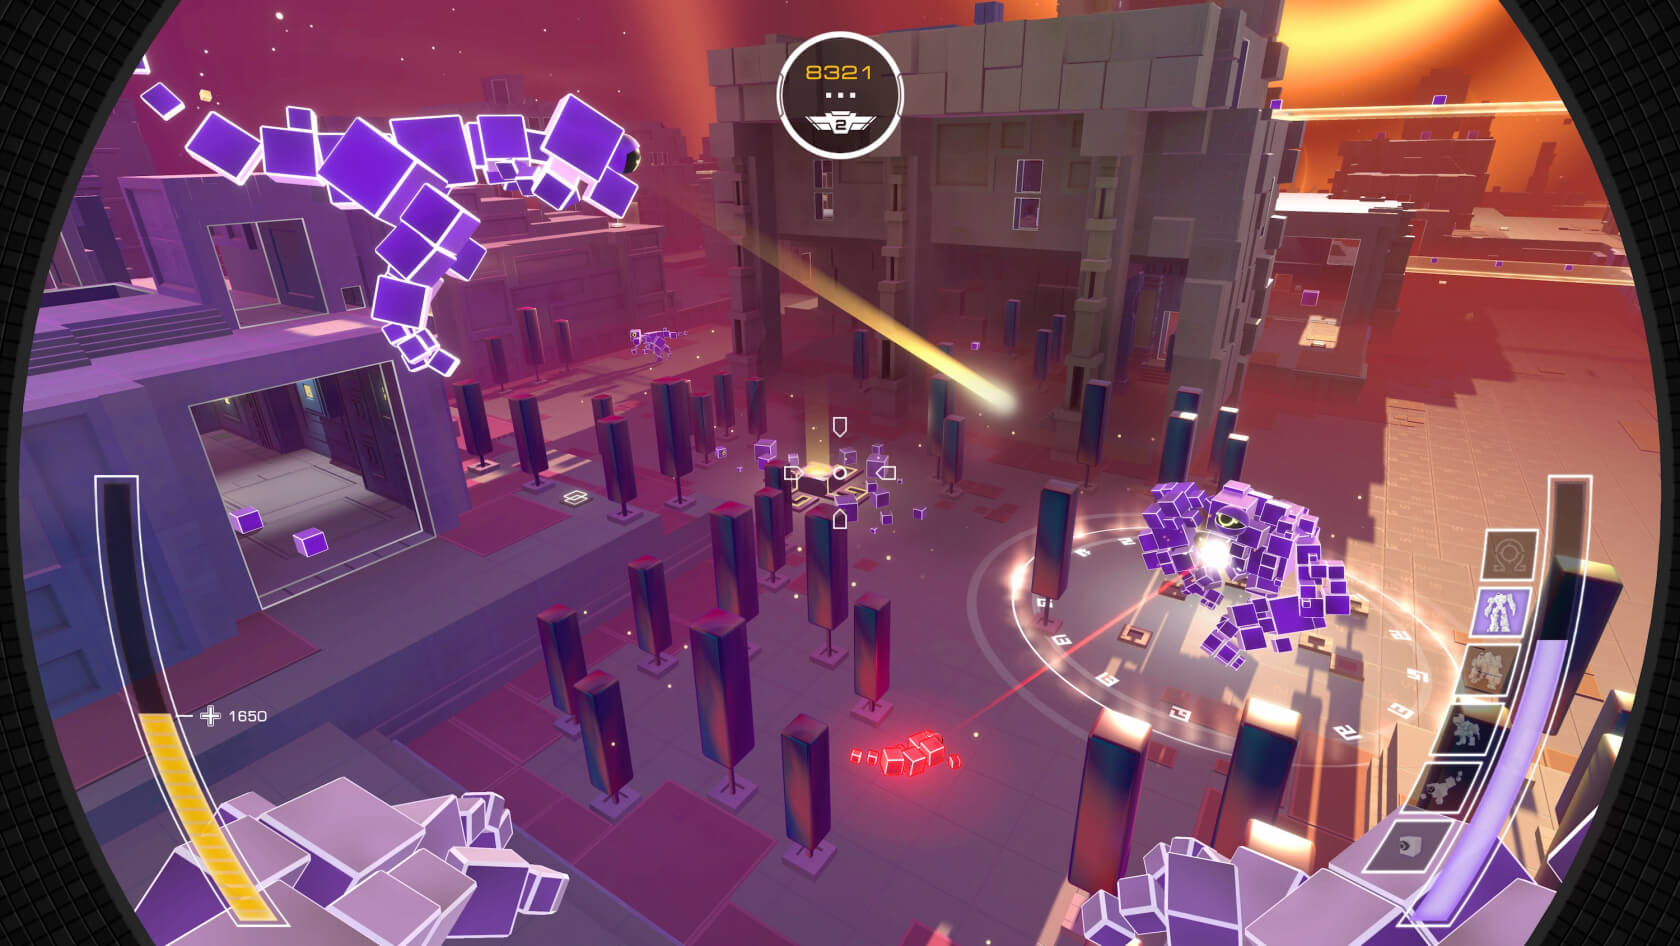 Ubisoft announces multiplayer shooter Atomega, out next week